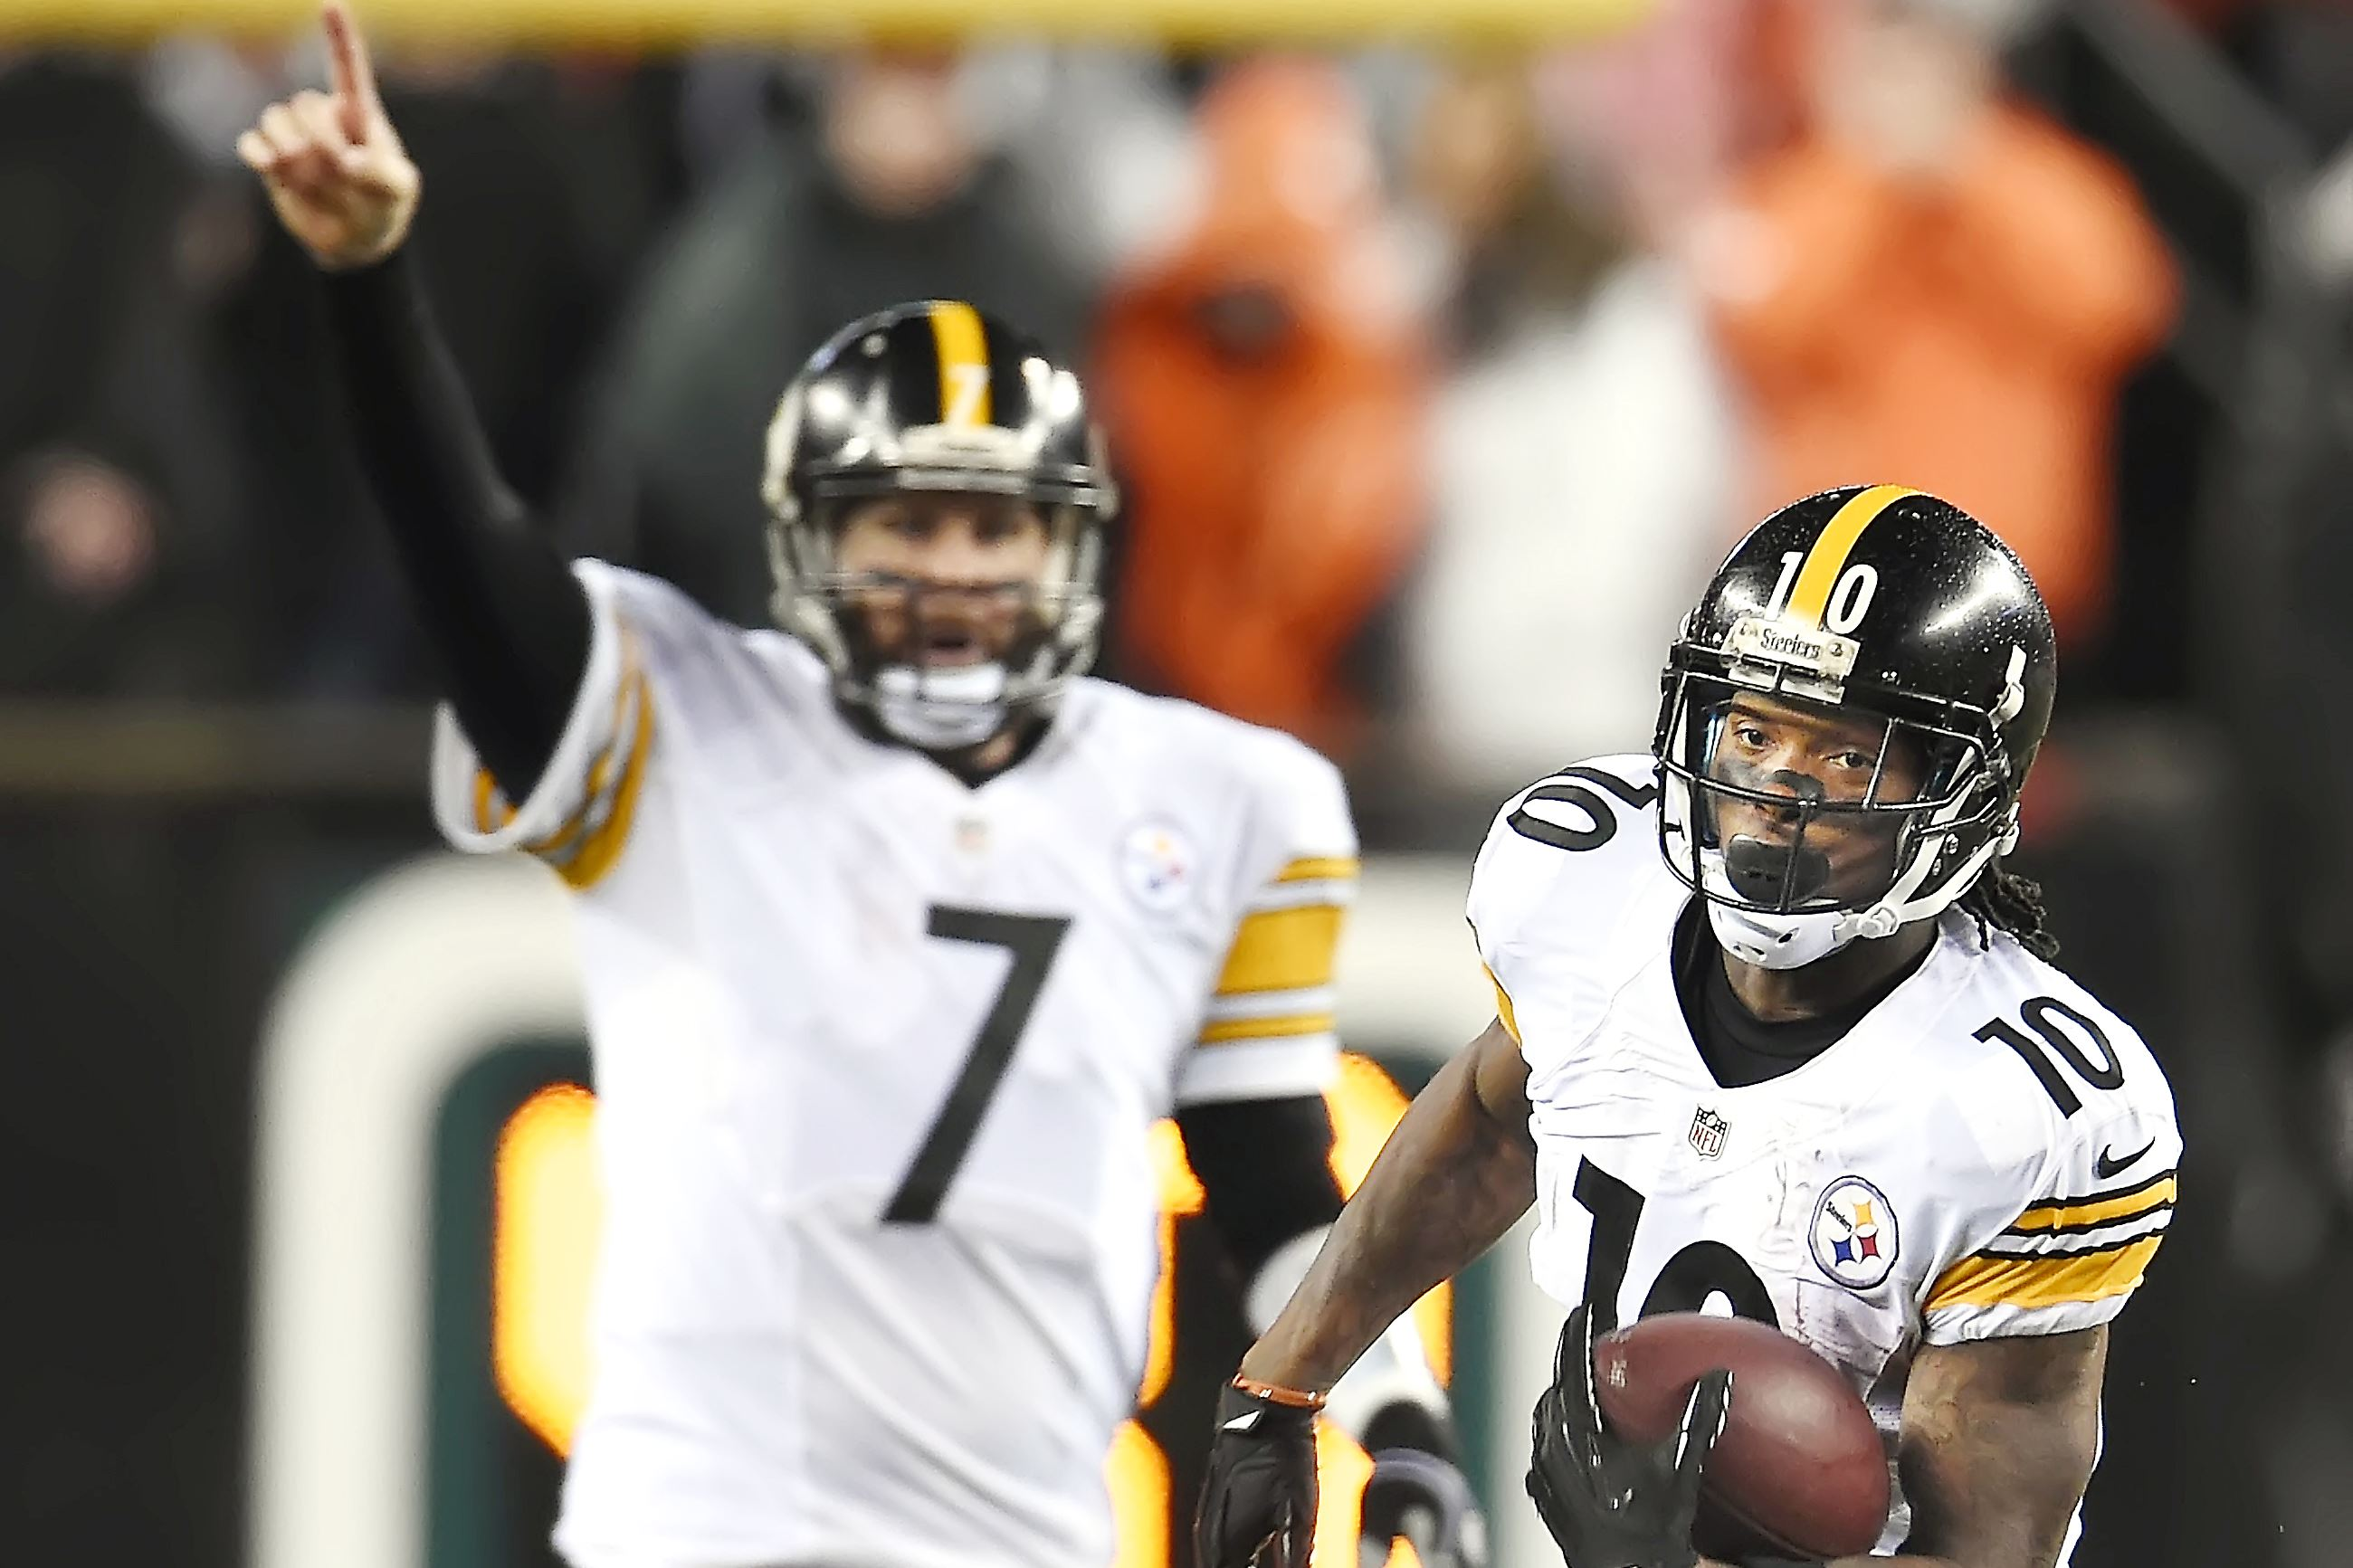 Roethlisberger says suspended receiver Bryant lied to him